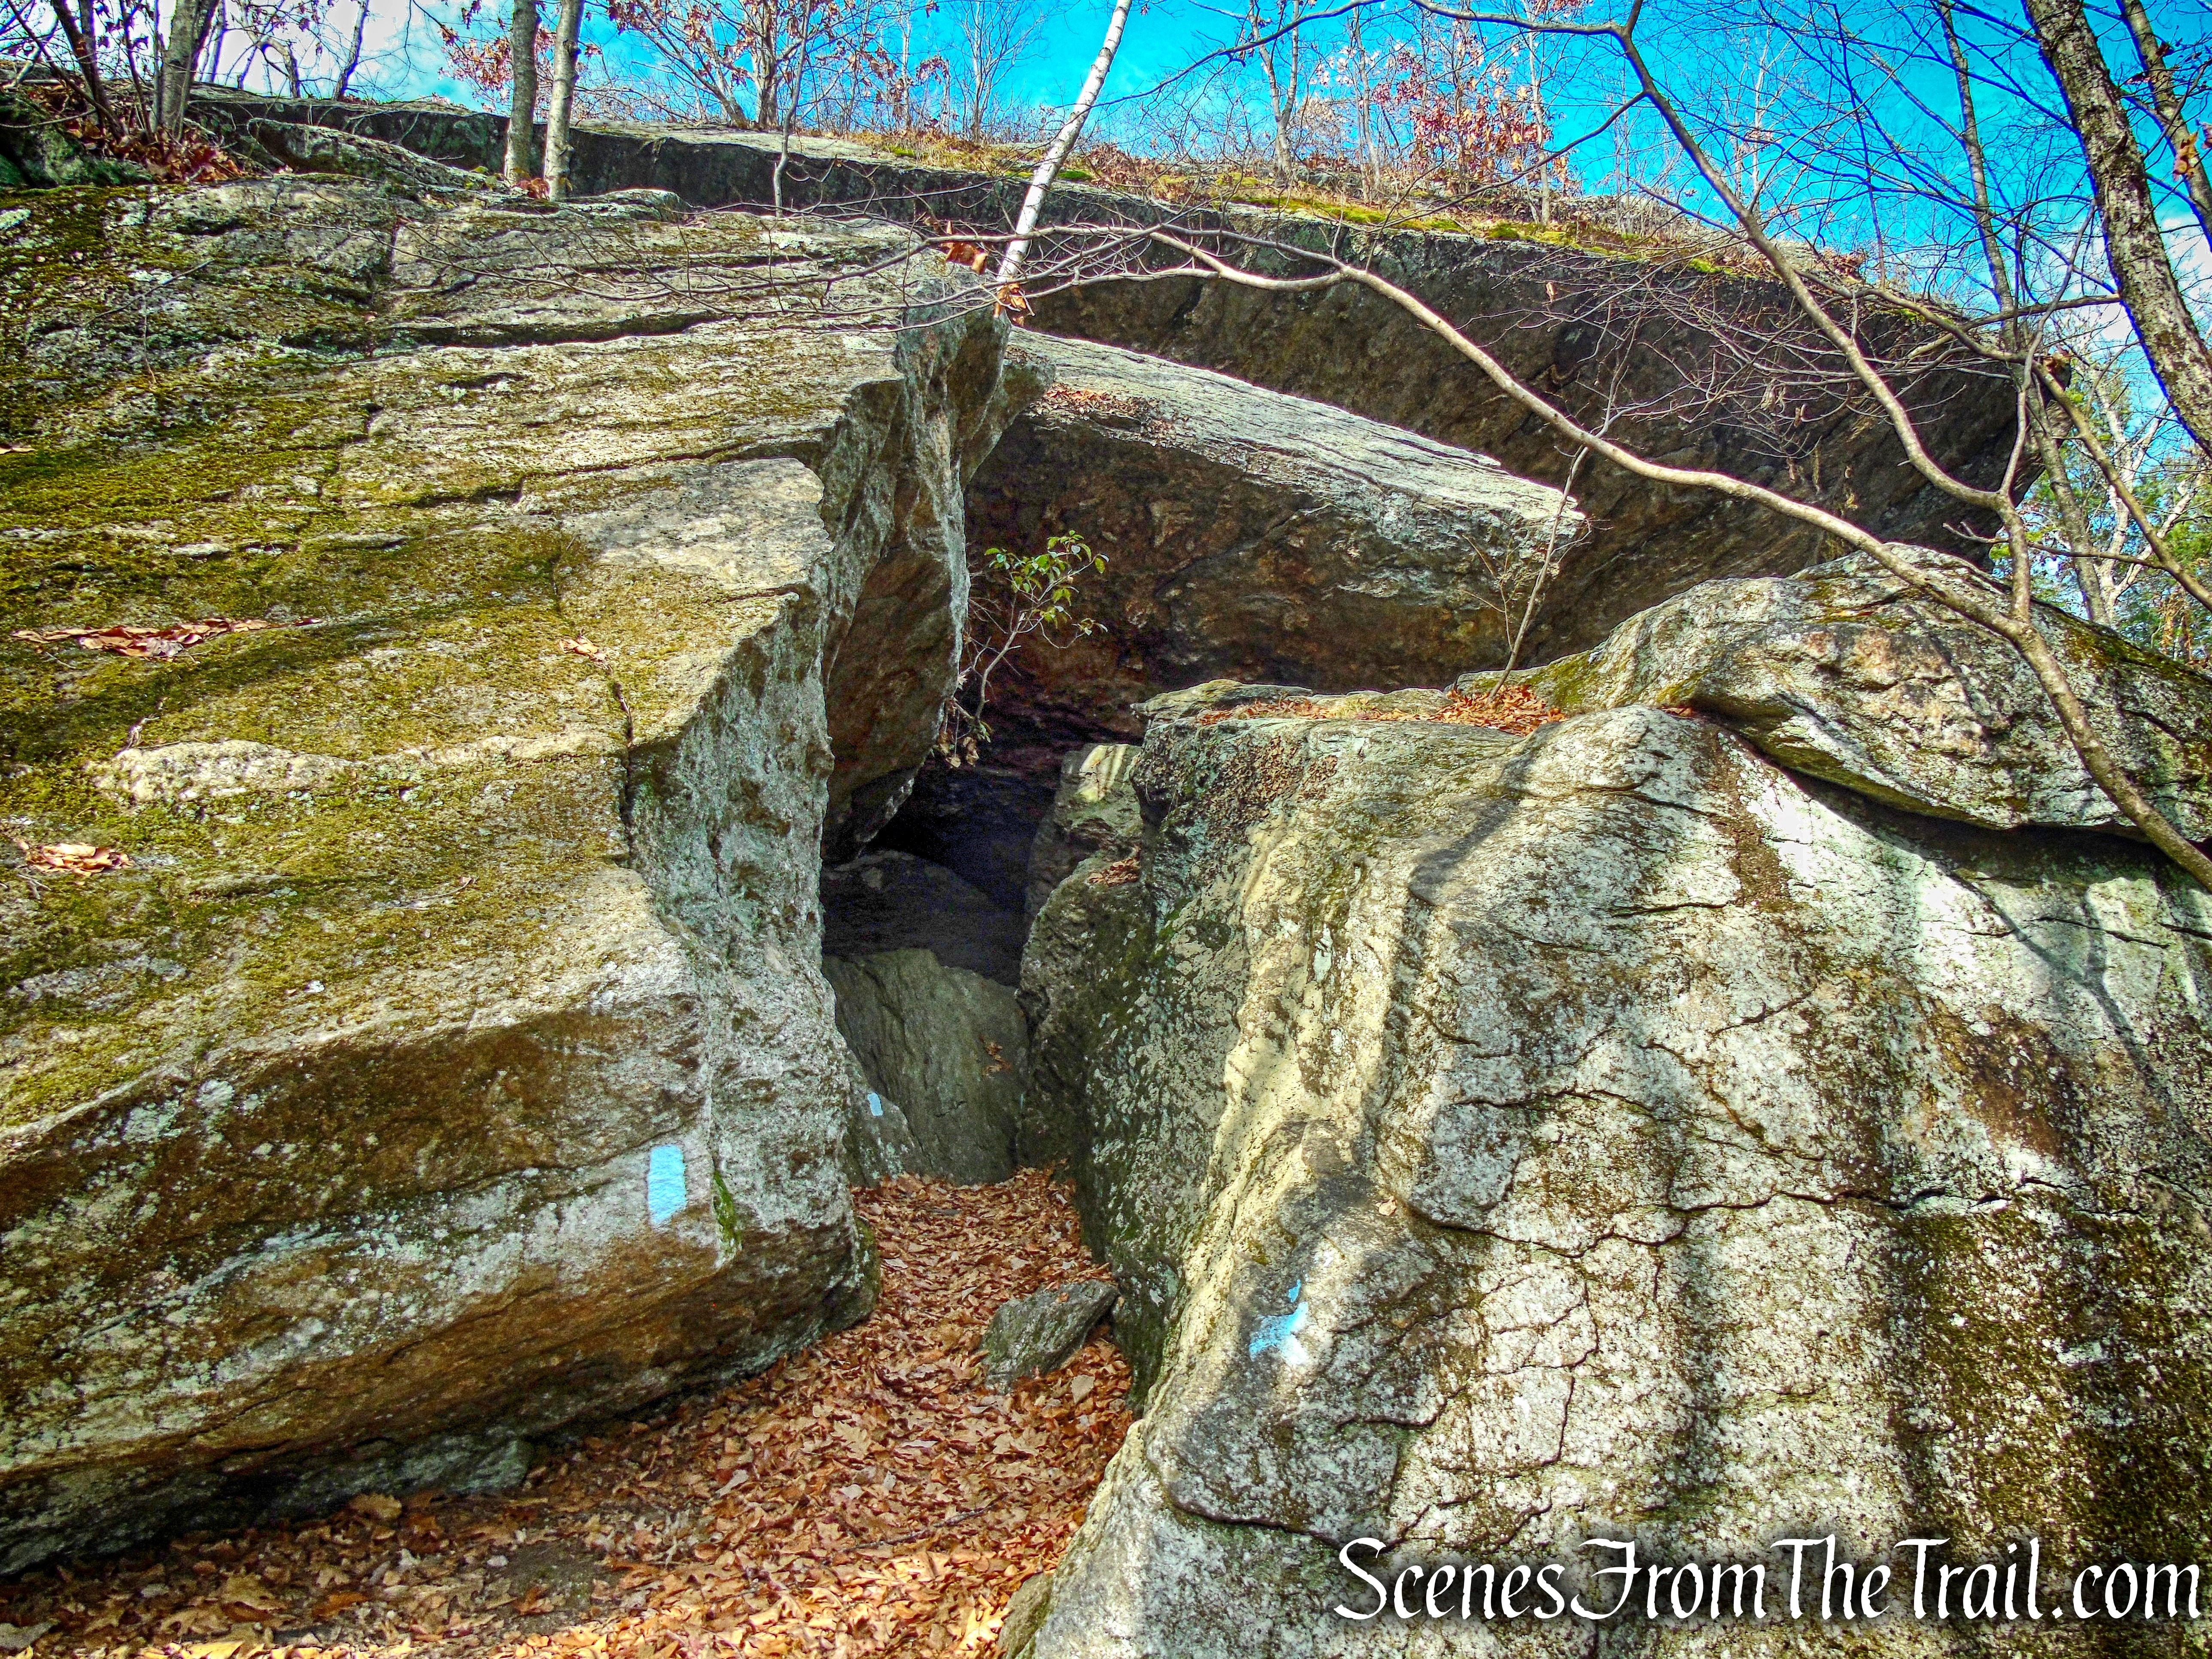 Leatherman's Cave - Mattatuck State Forest